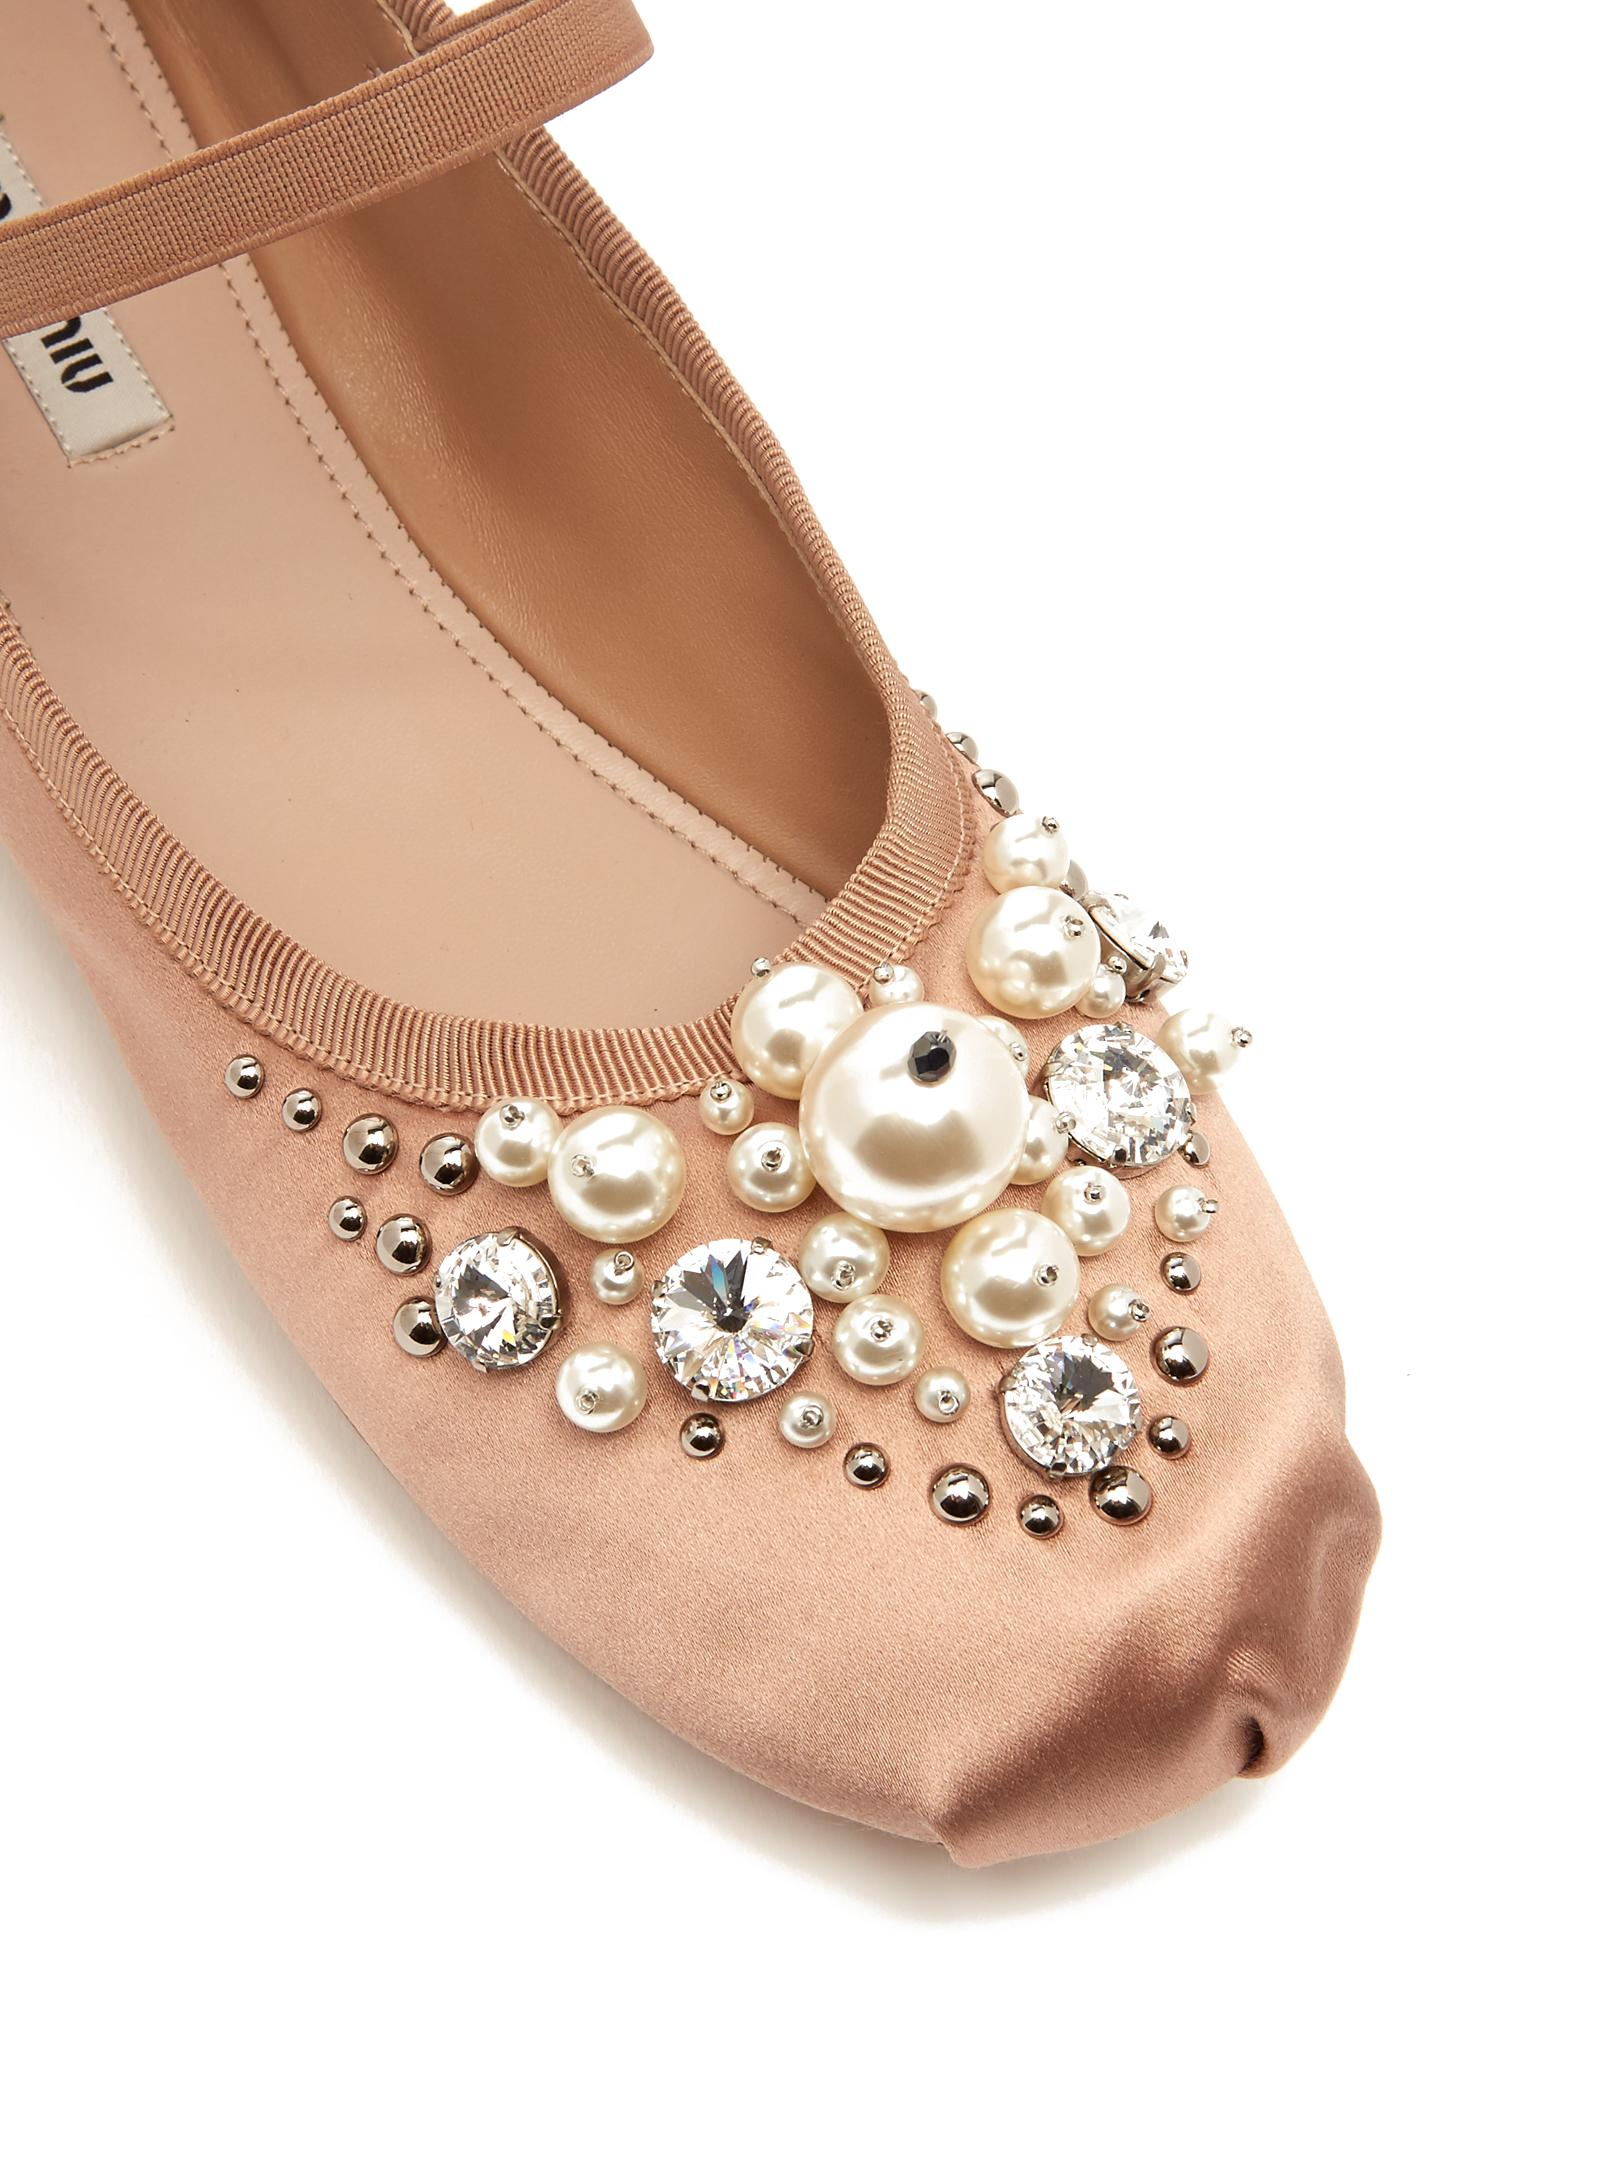 Miu Miu Satin Embellished Flats pictures sale online cheap Inexpensive cheap sale sneakernews genuine oqaT0XT3